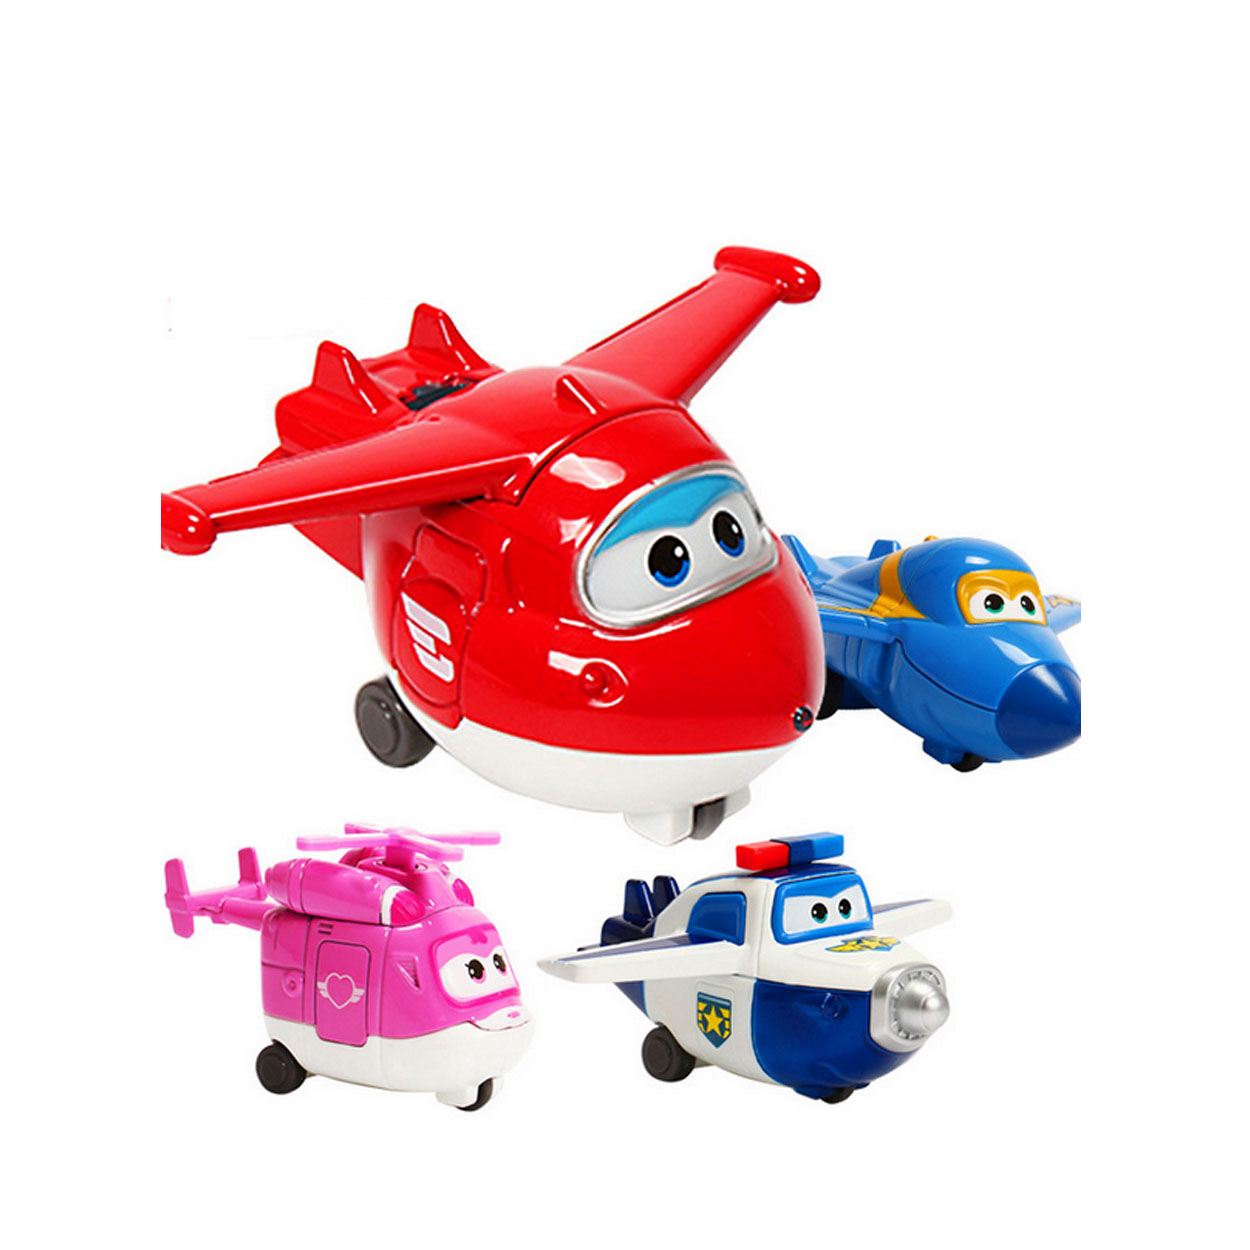 mini Superwings 1pcs/set ABS Toys mini Super Wings Airplane Robots with Supporting hangar Kids Gifts Toys 5245 robots in disguise 1 step changers